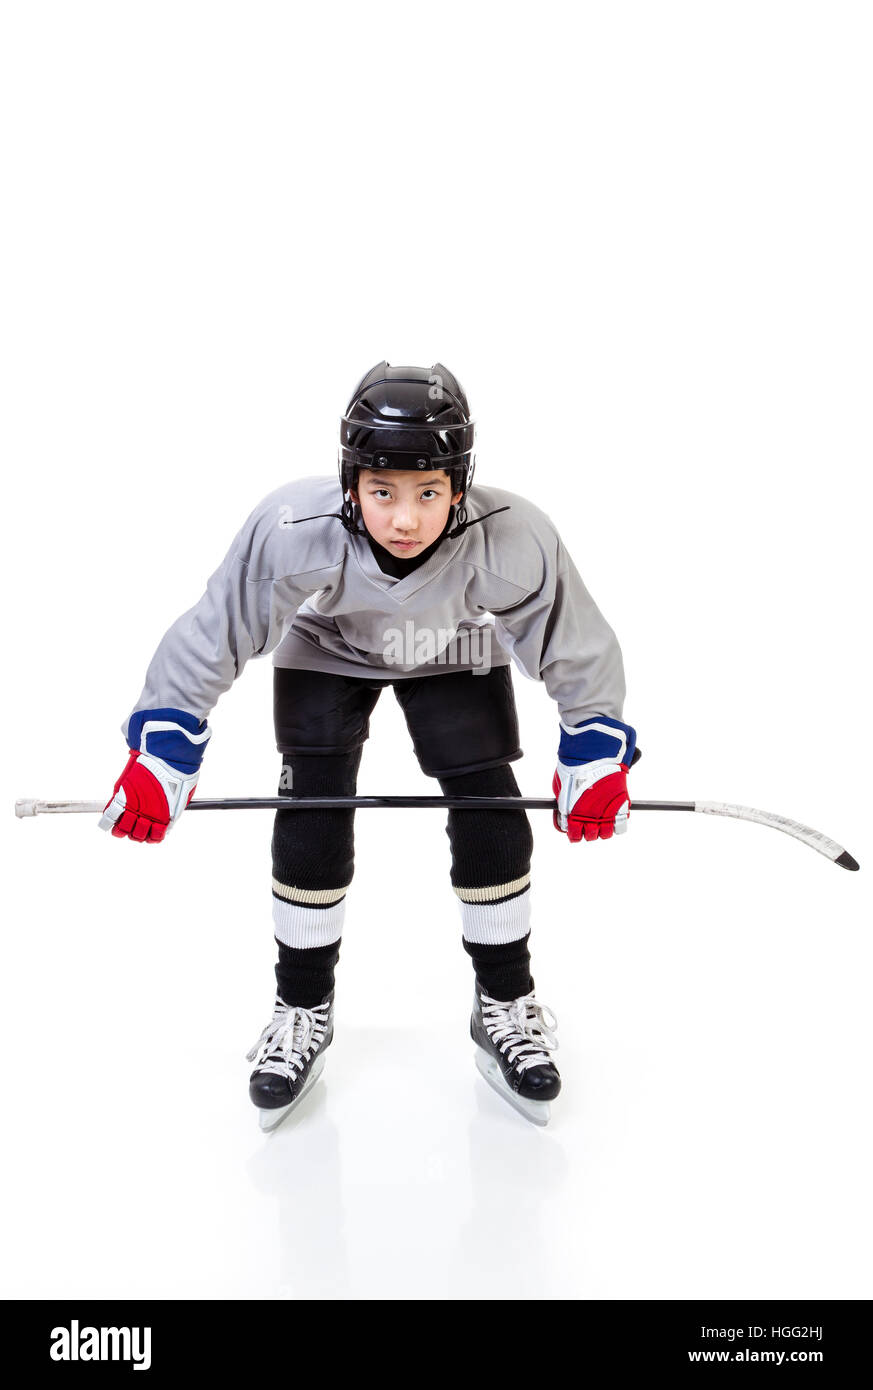 Junior ice hockey player with full equipment and uniform isolated on white background. In faceoff stance. - Stock Image